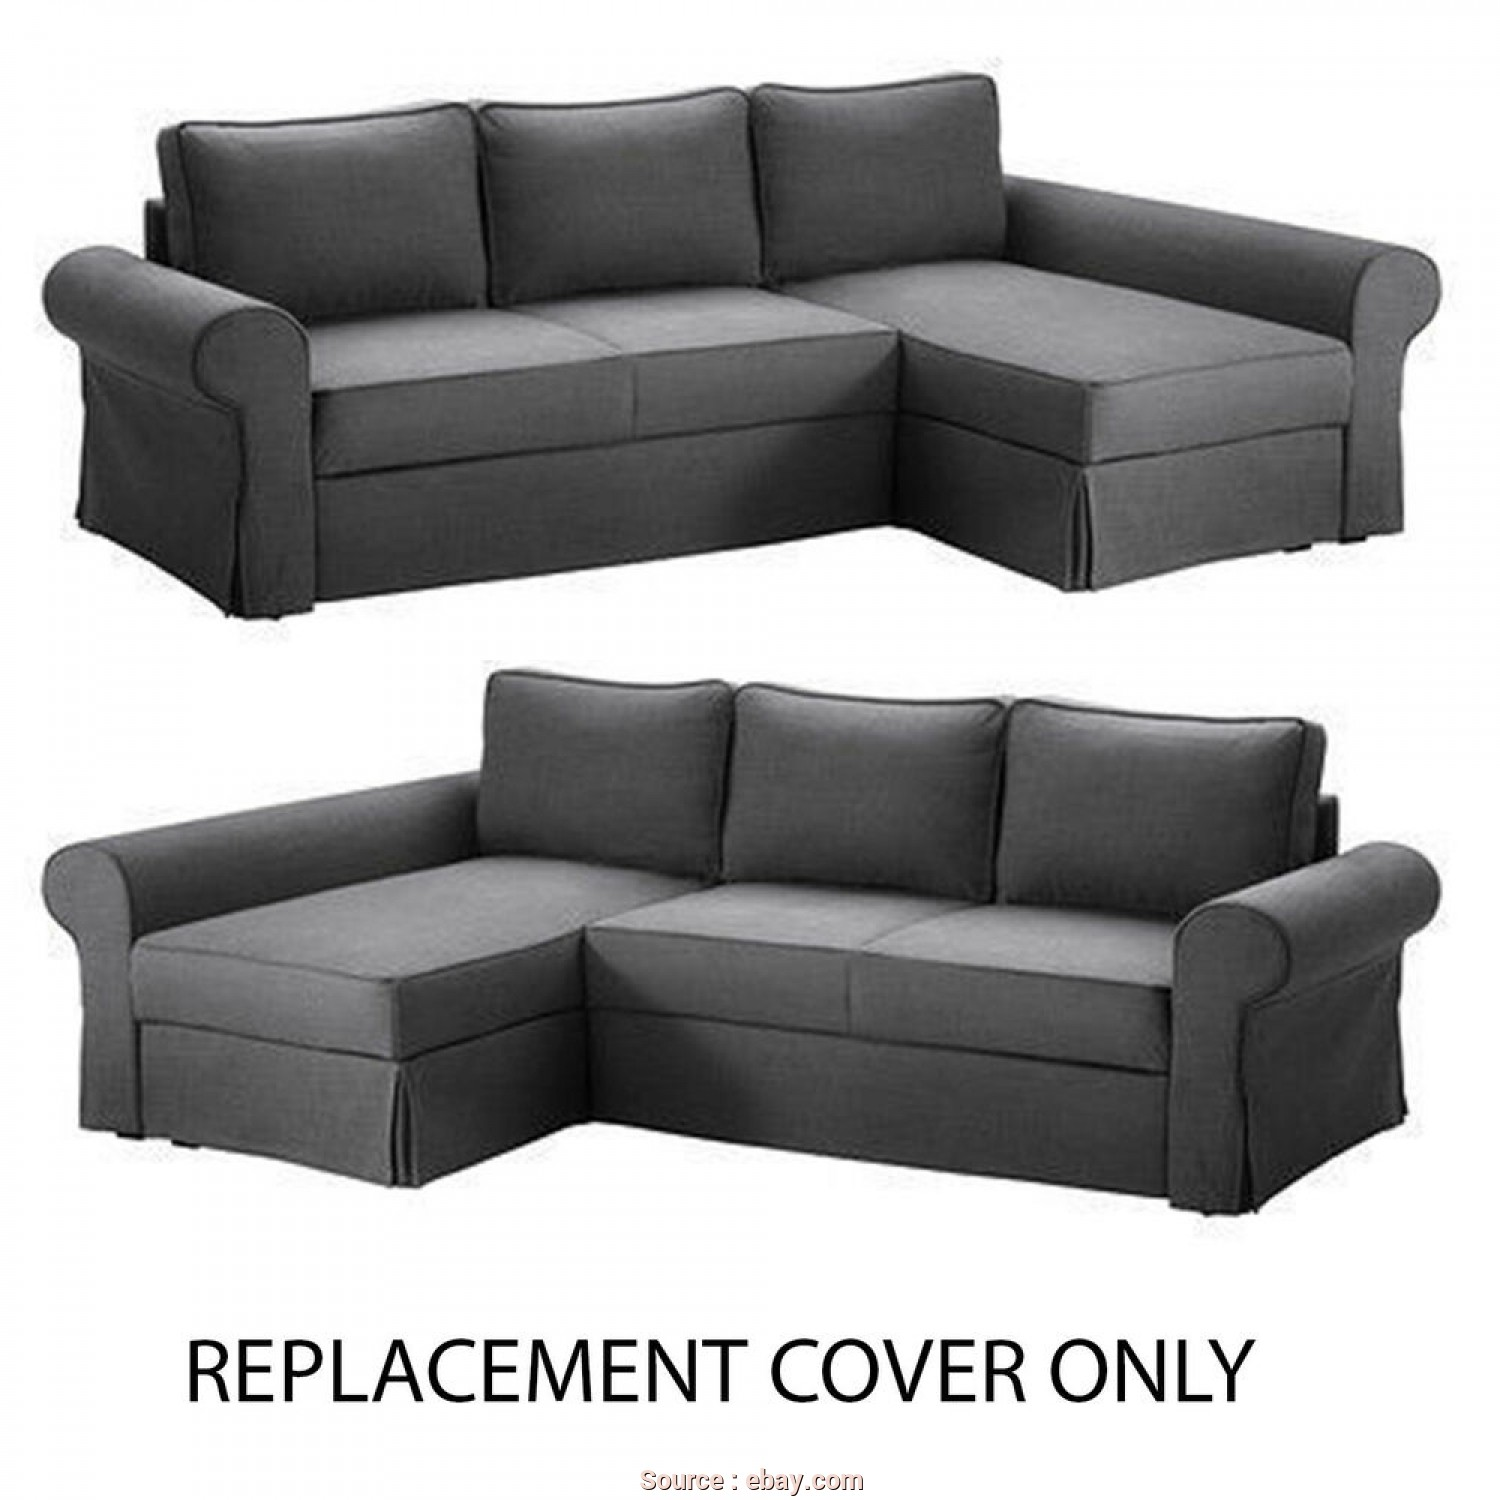 Ikea Backabro Romania, Favoloso IKEA Backabro Replacement Sofa, With Chaise Slip Cover, Svanby Grey, EBay